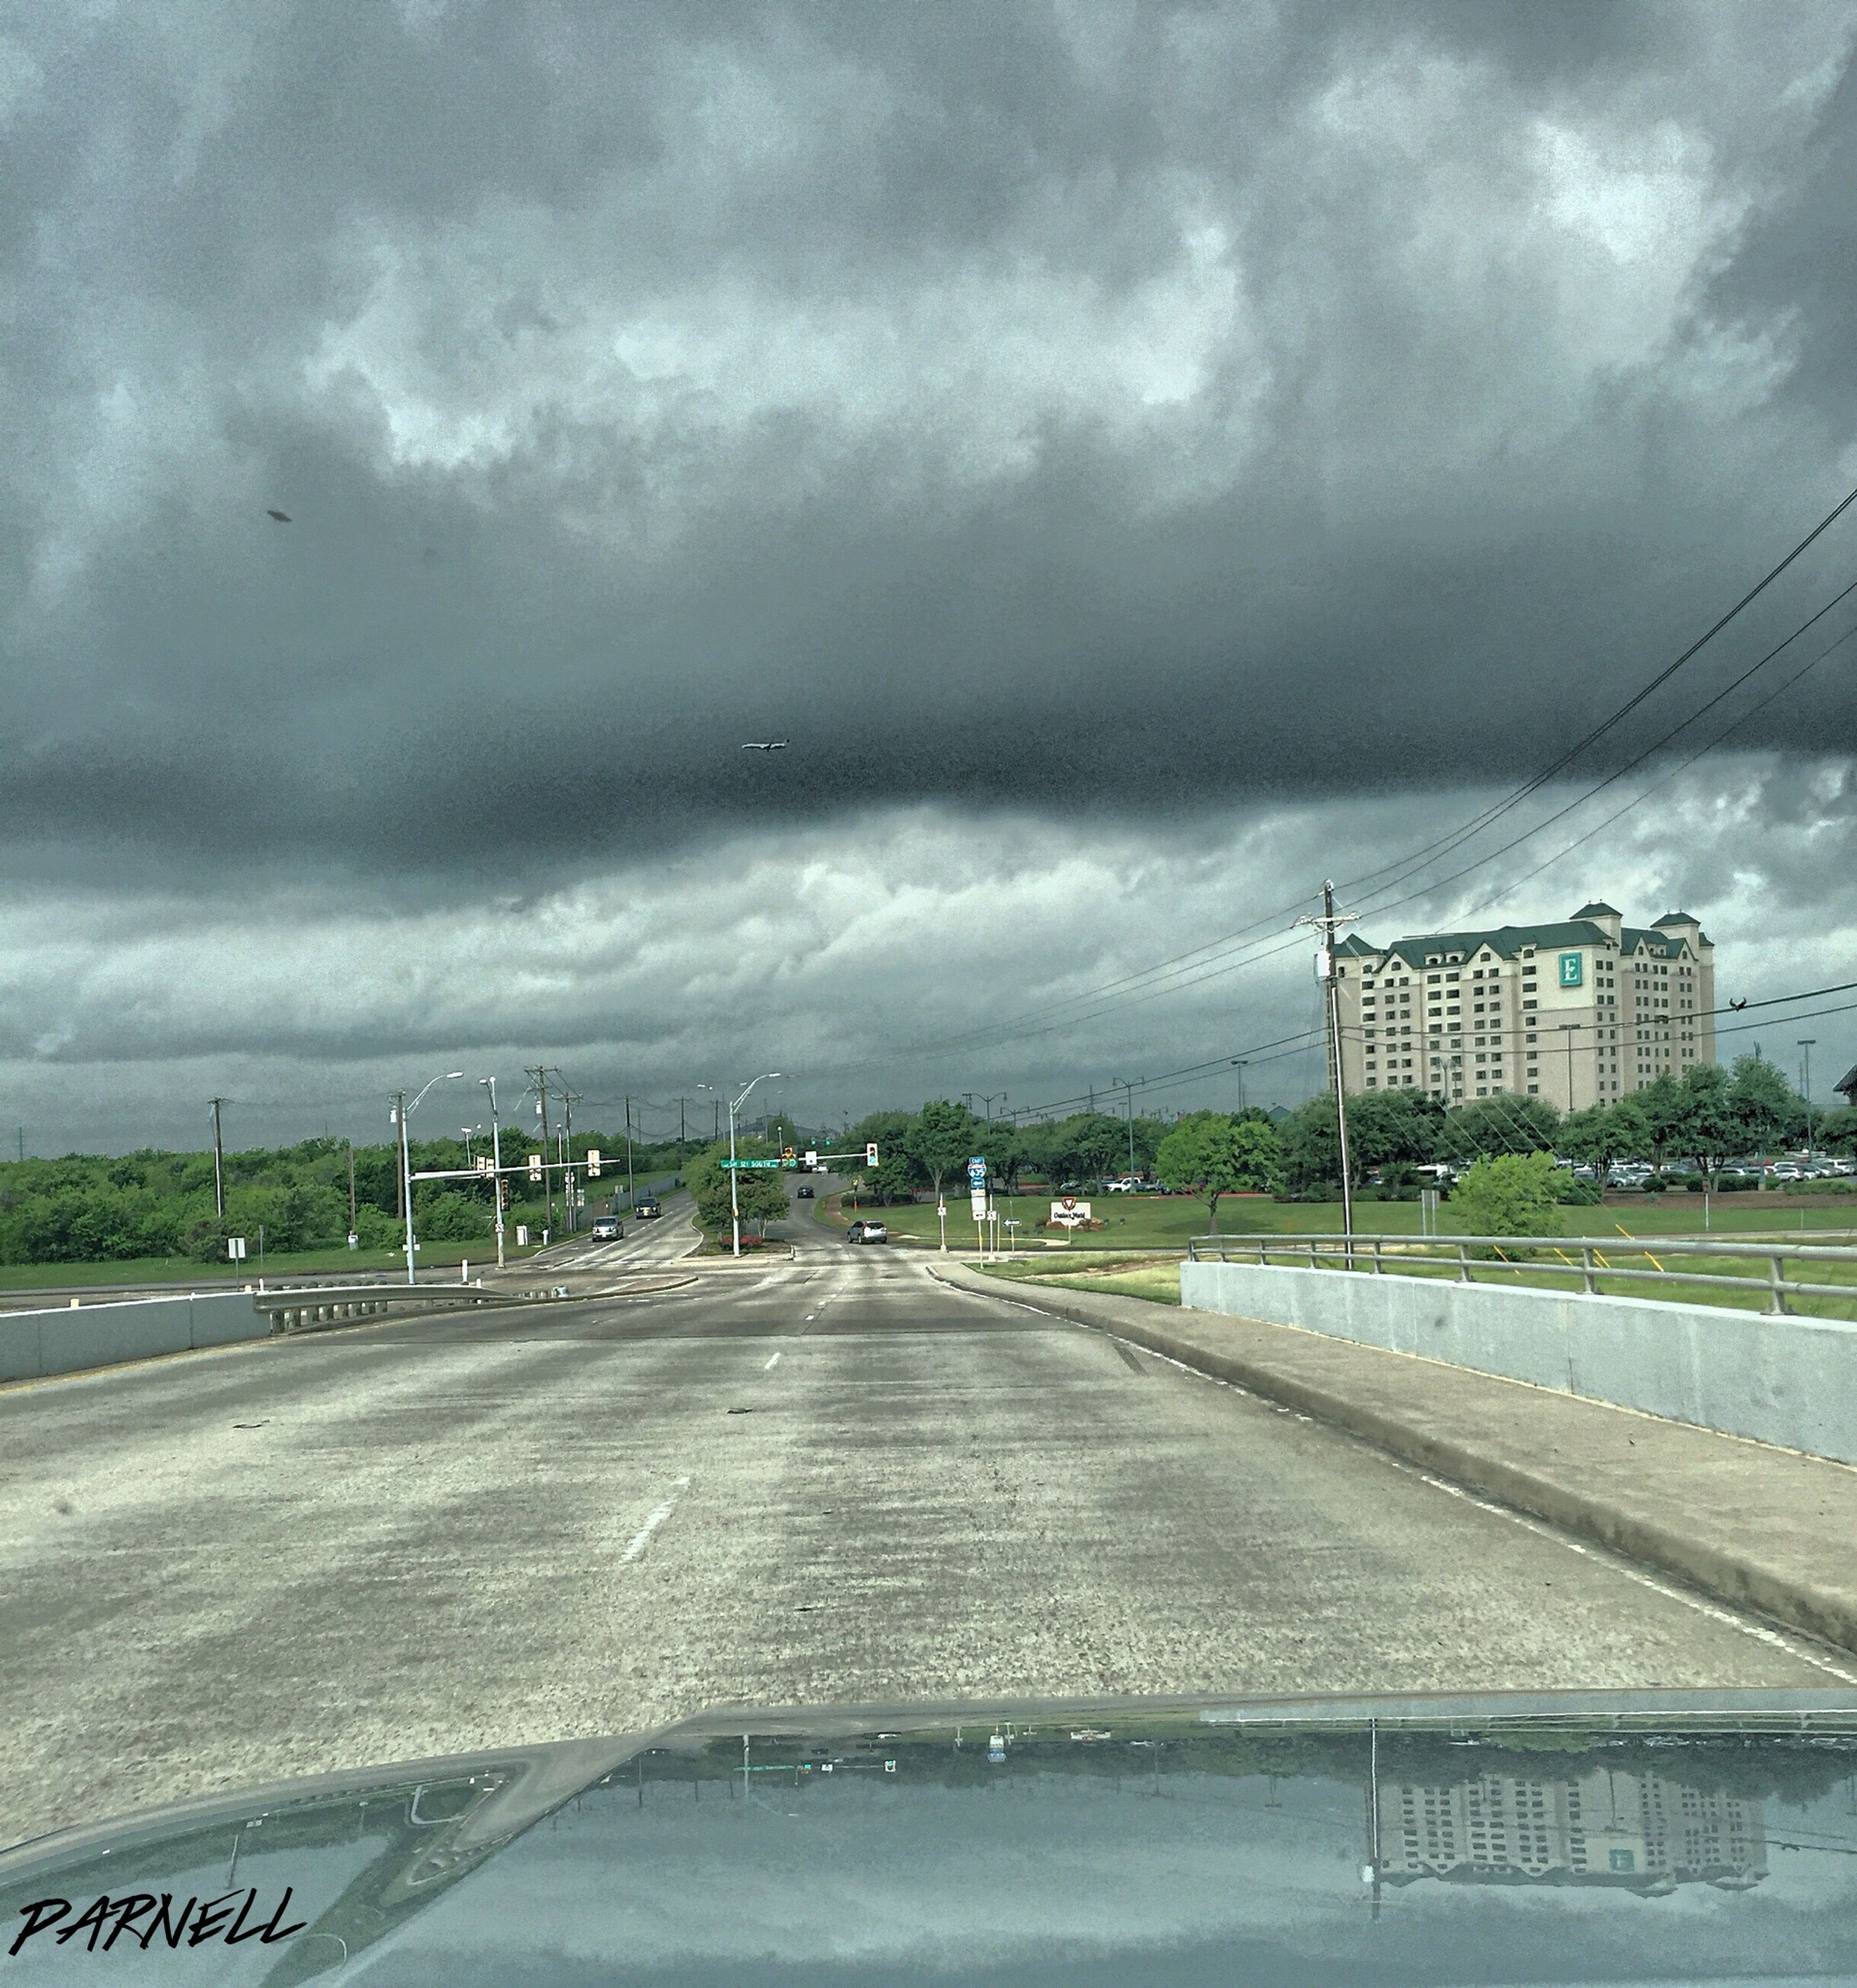 sky, cloud - sky, cloudy, transportation, road, the way forward, road marking, architecture, built structure, building exterior, weather, overcast, cloud, street, diminishing perspective, car, vanishing point, storm cloud, land vehicle, mode of transport